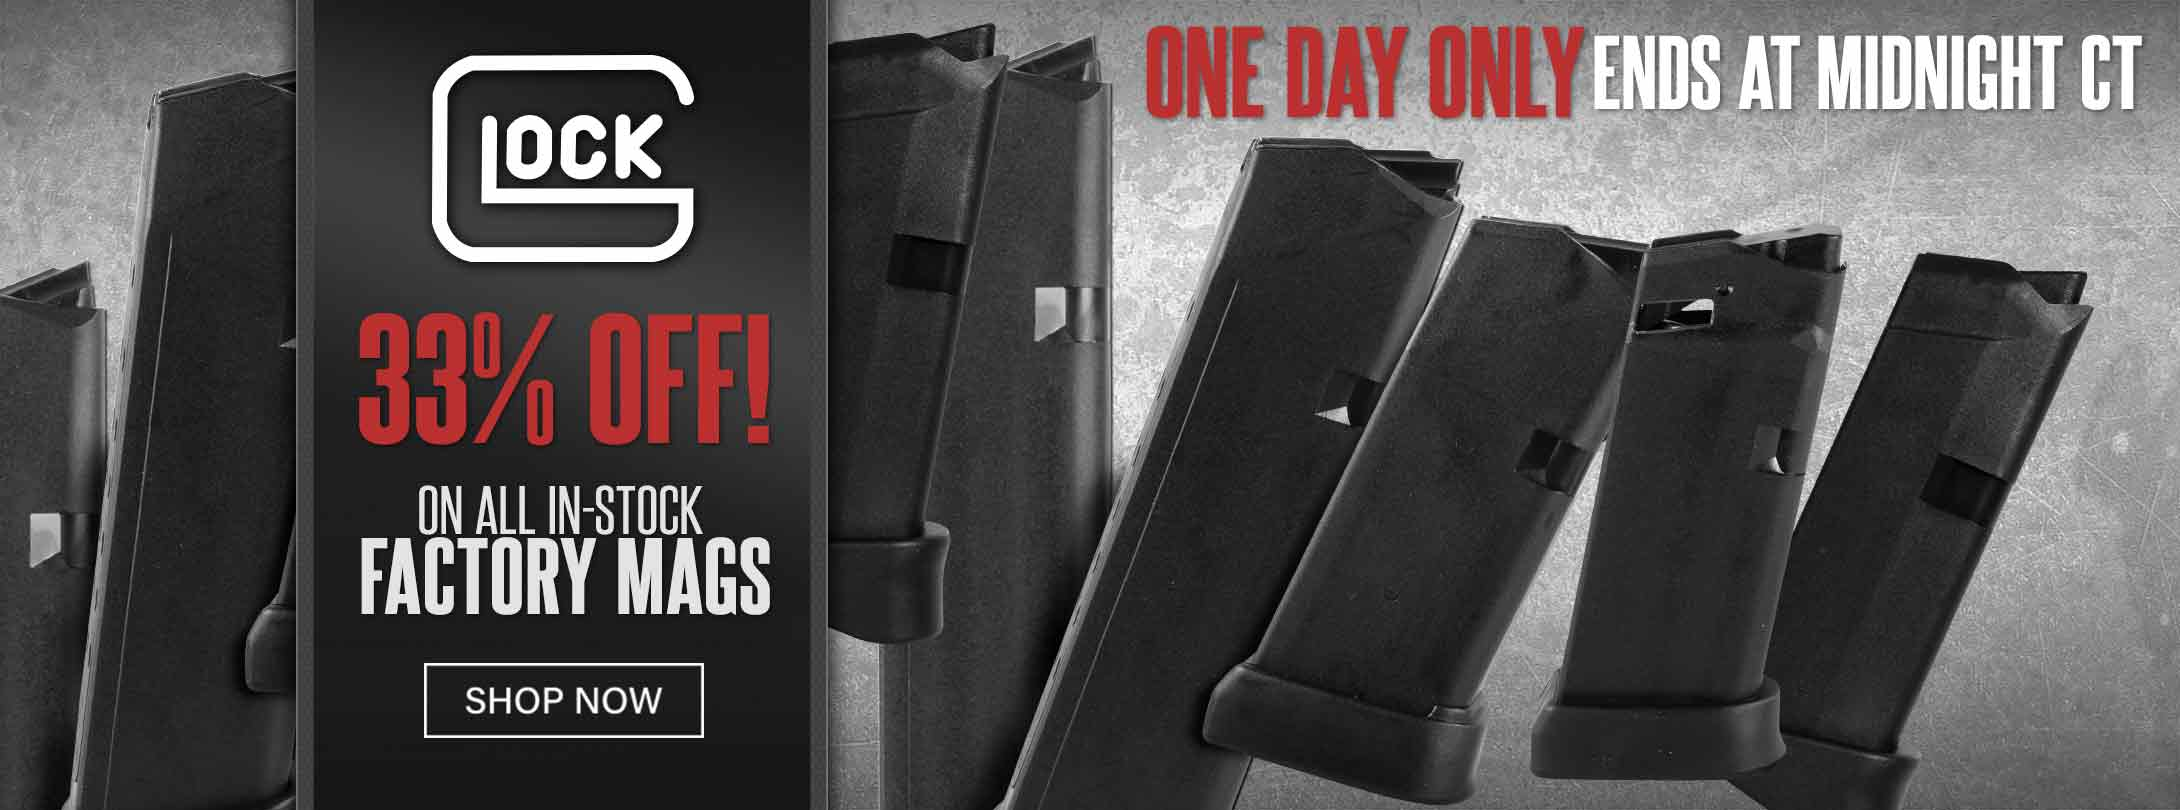 Save on In-Stock Factory Glock Mags